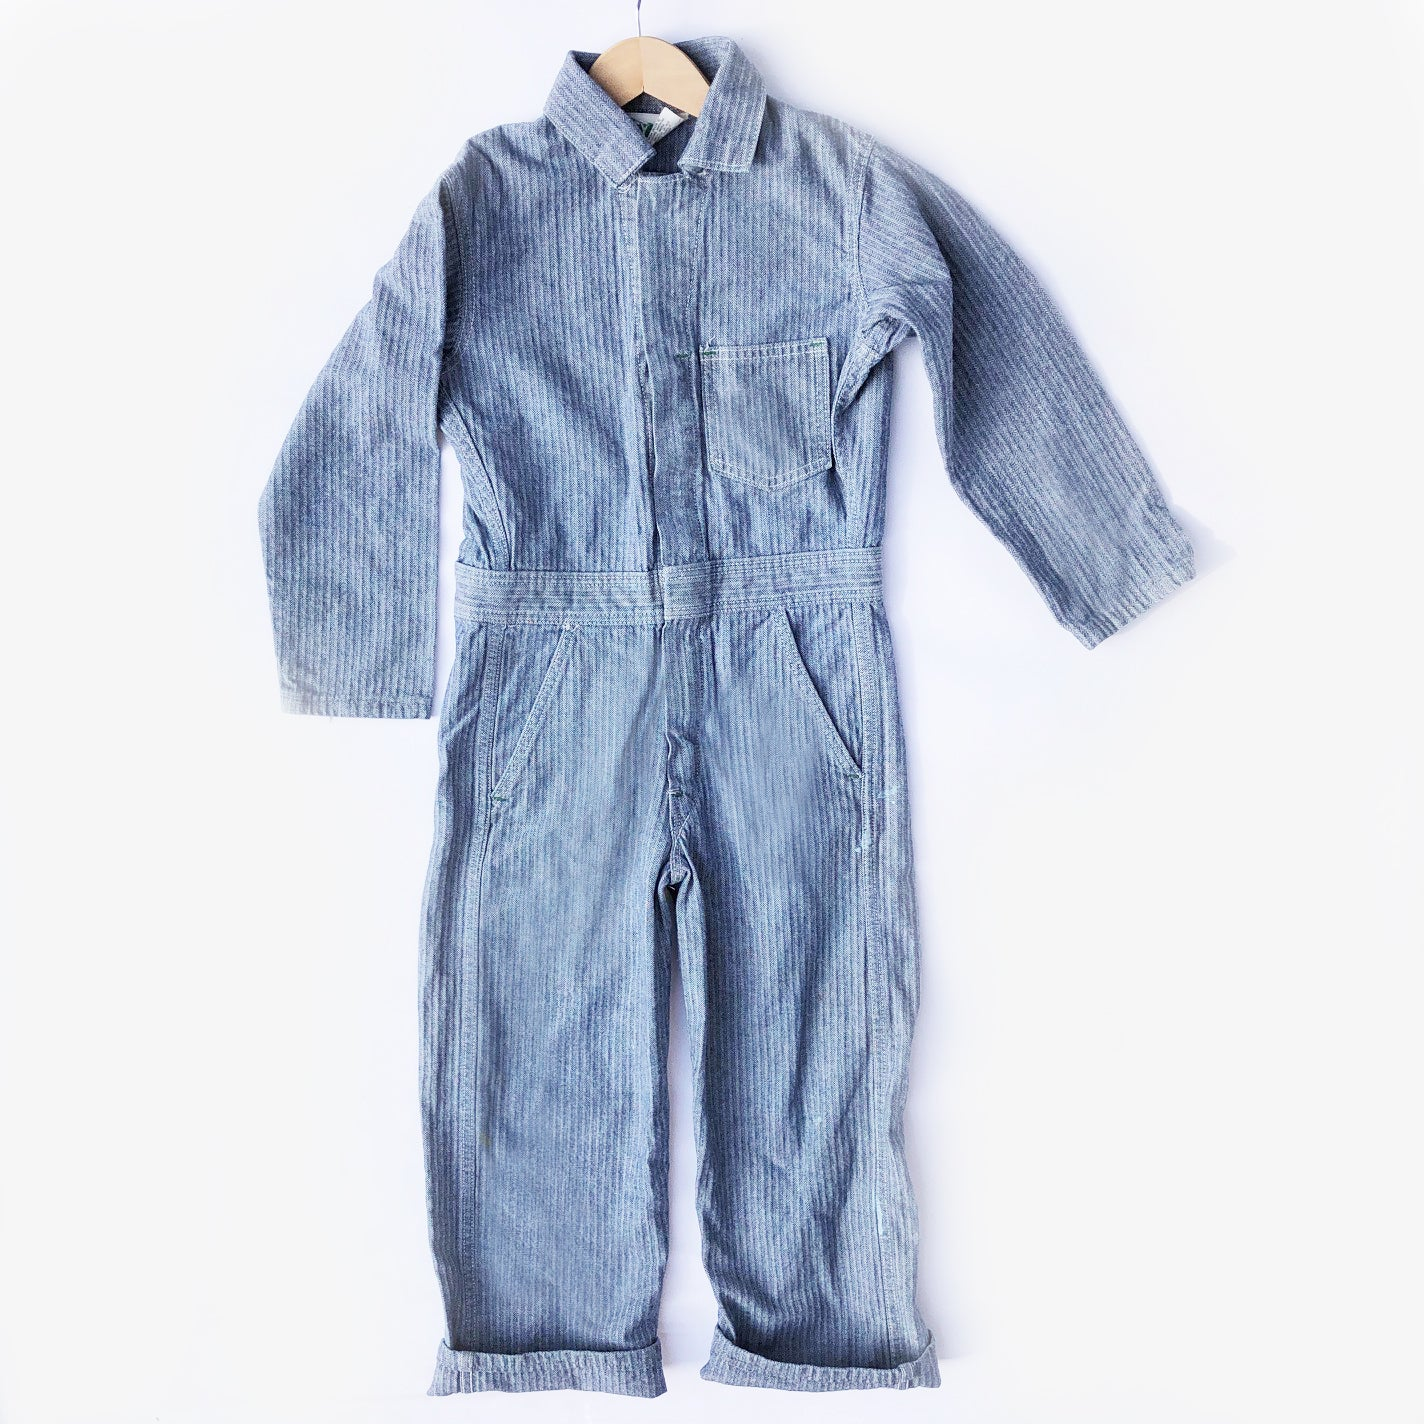 Vintage Key Coveralls size 10-11